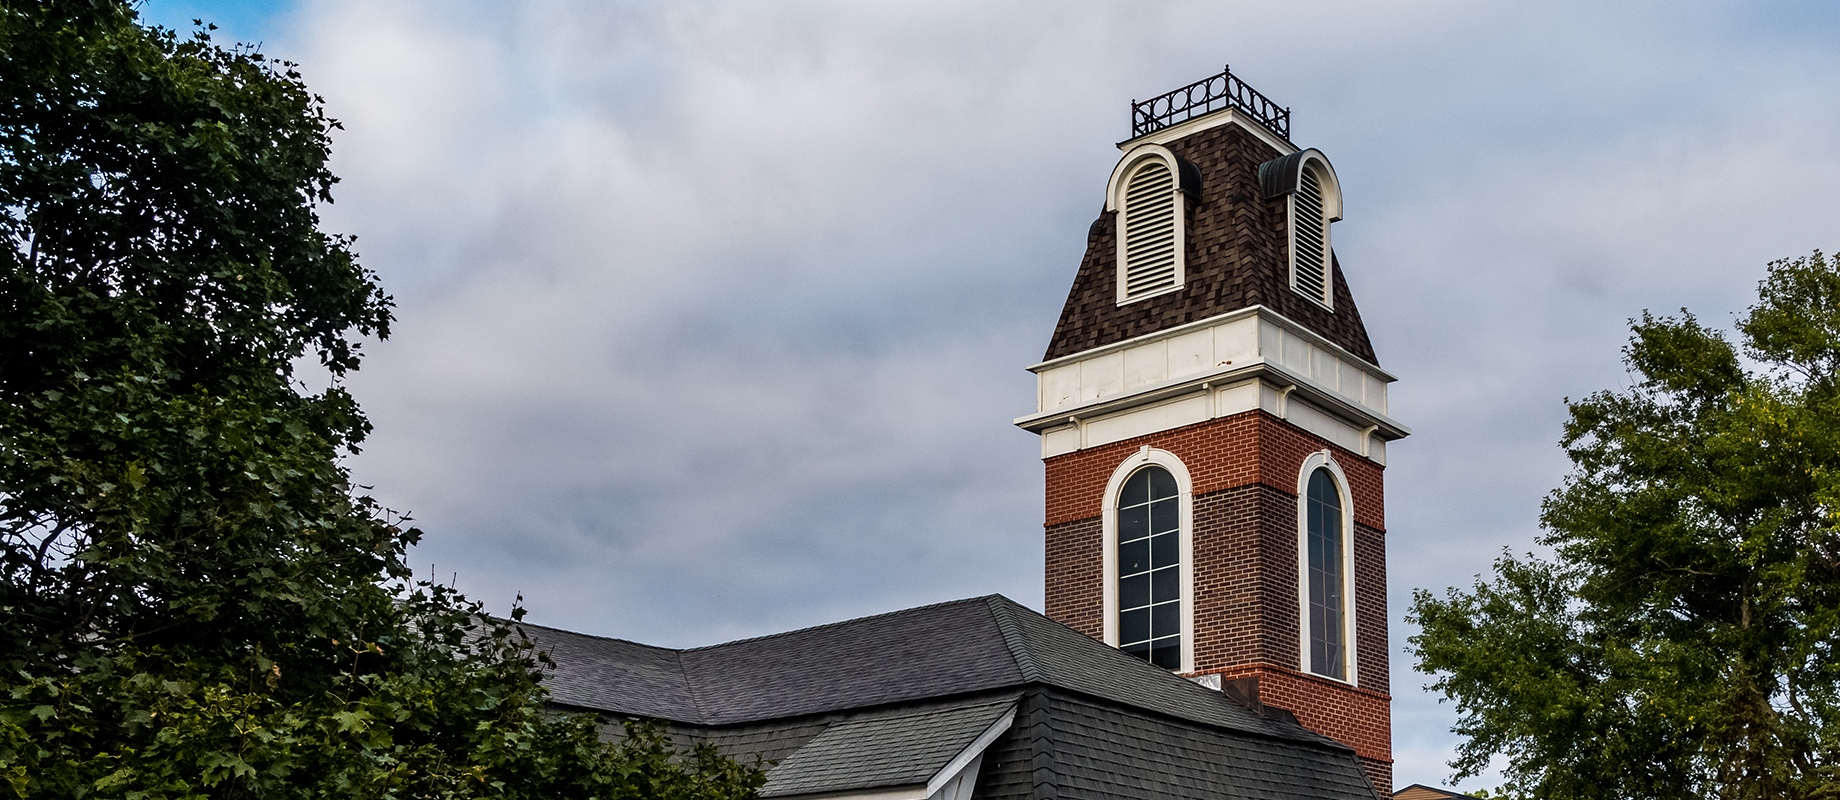 Bell tower at Simpson College